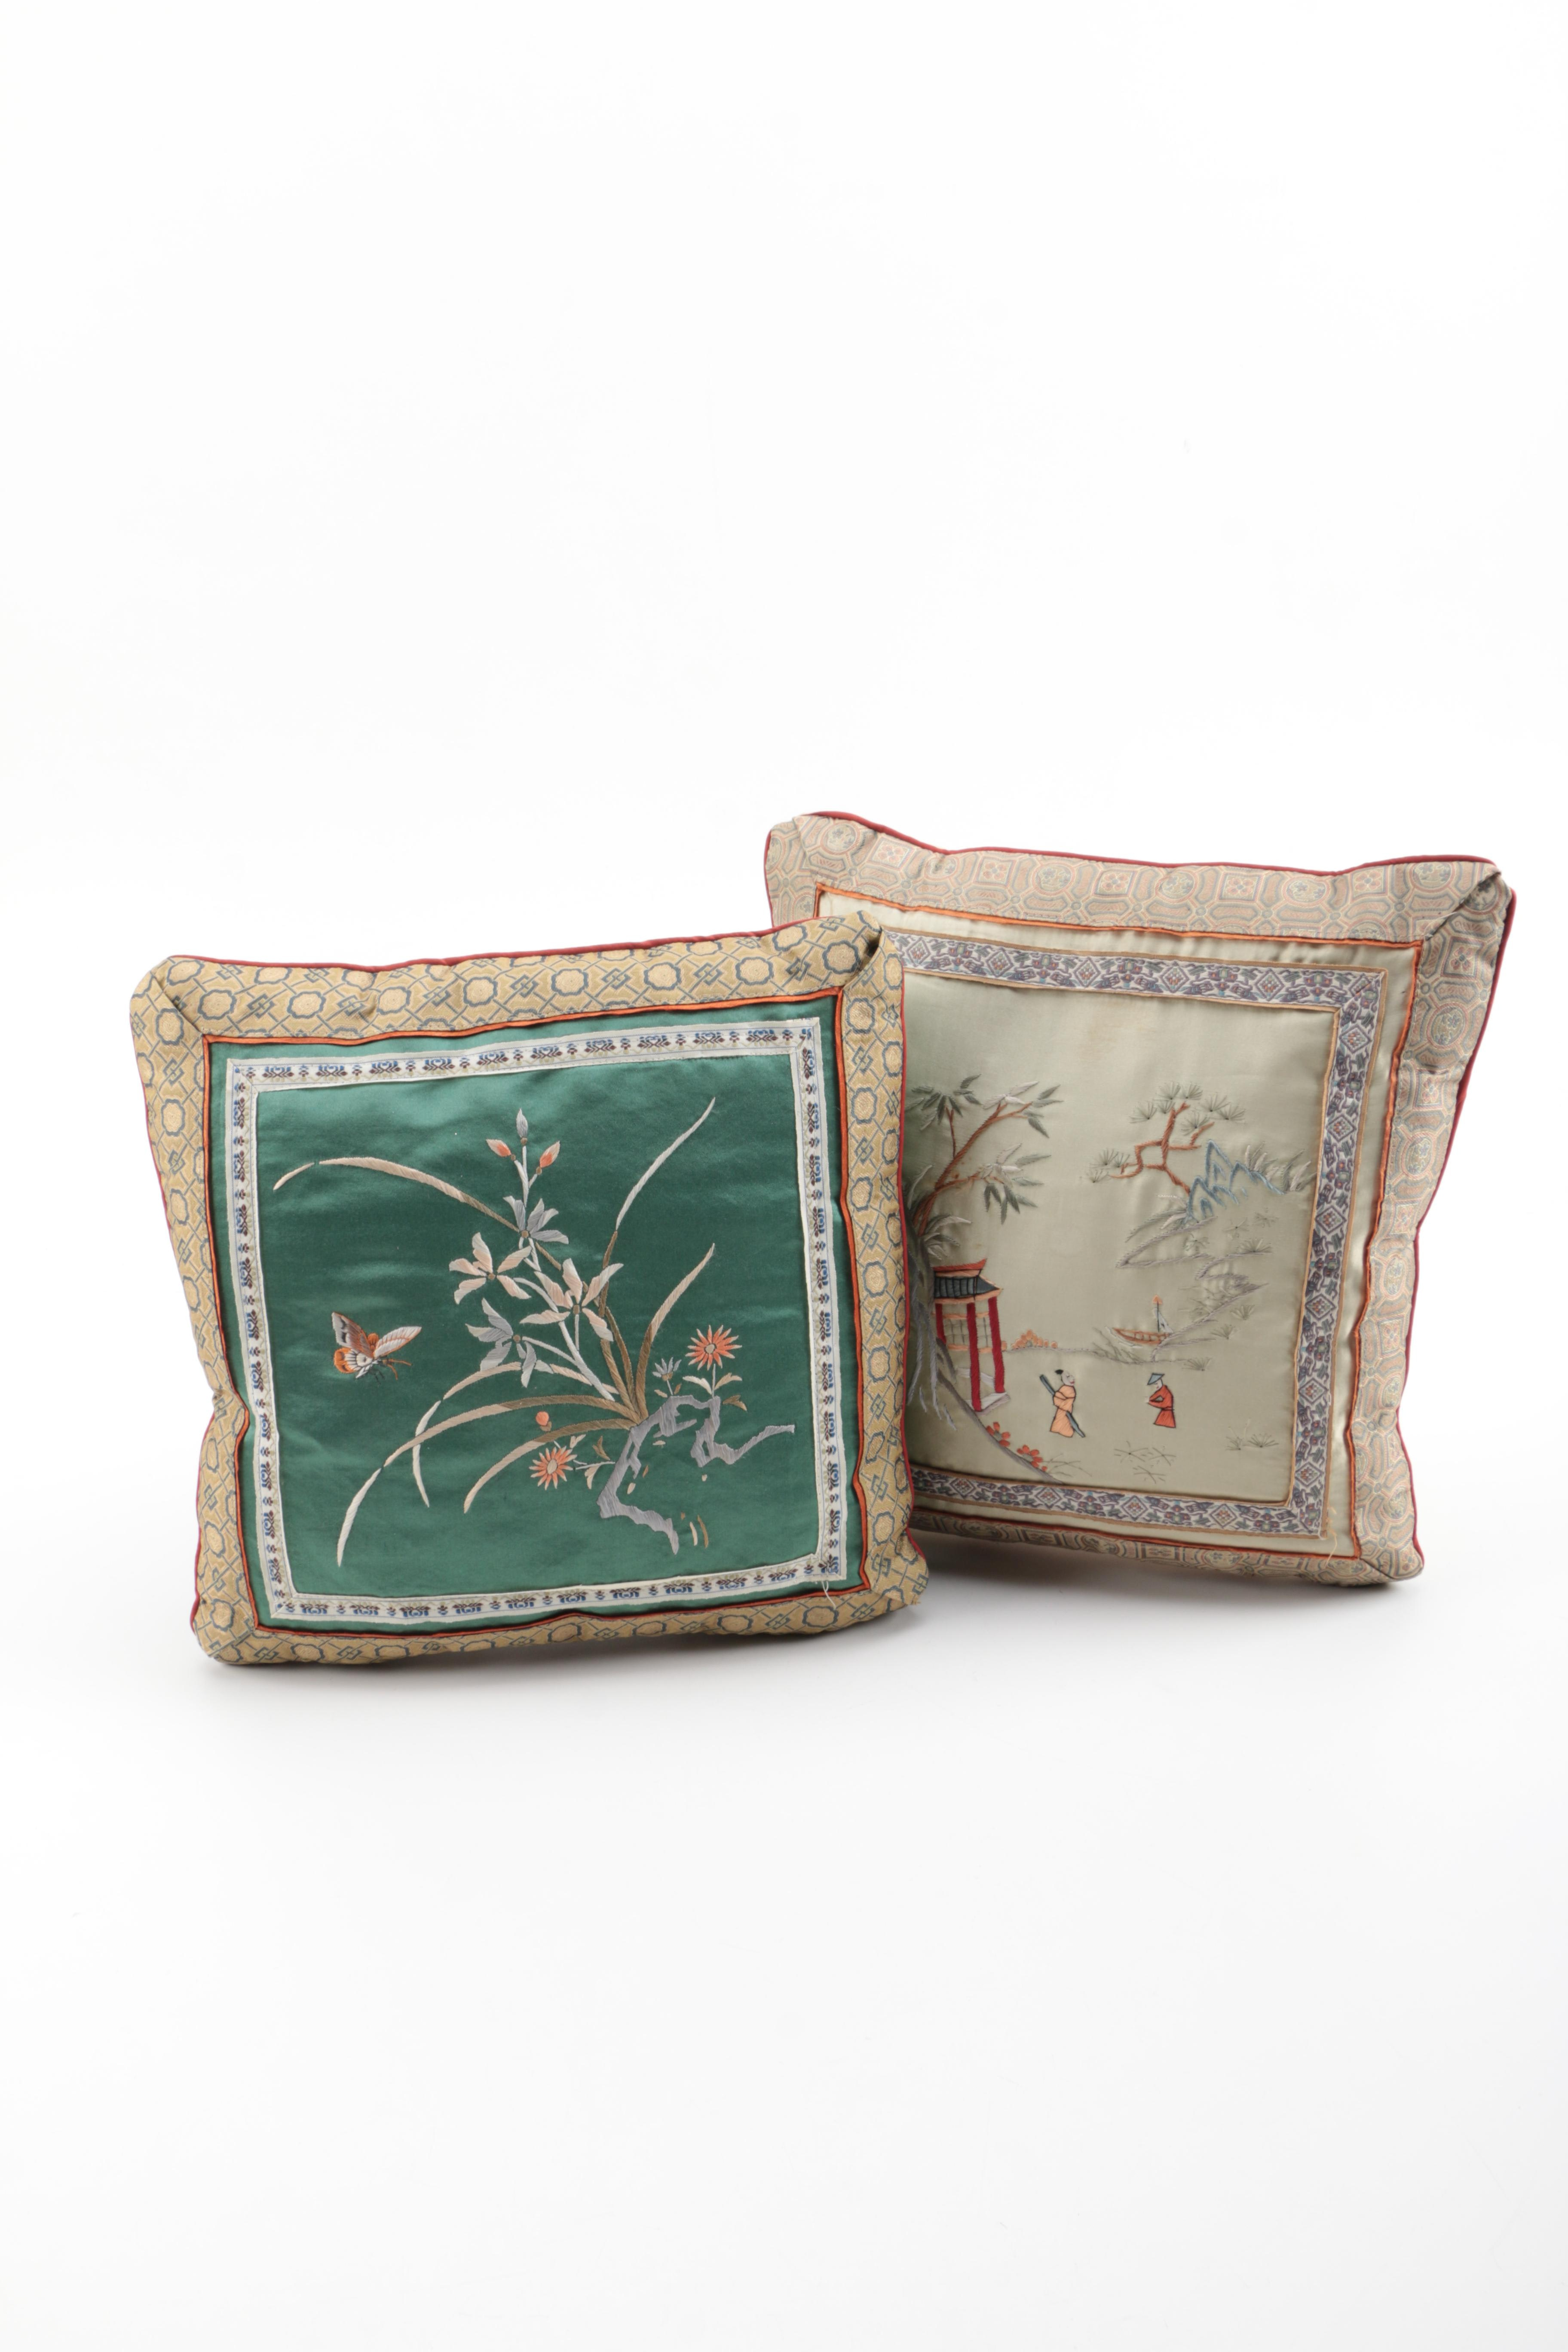 Chinese Embroidered Throw Pillows